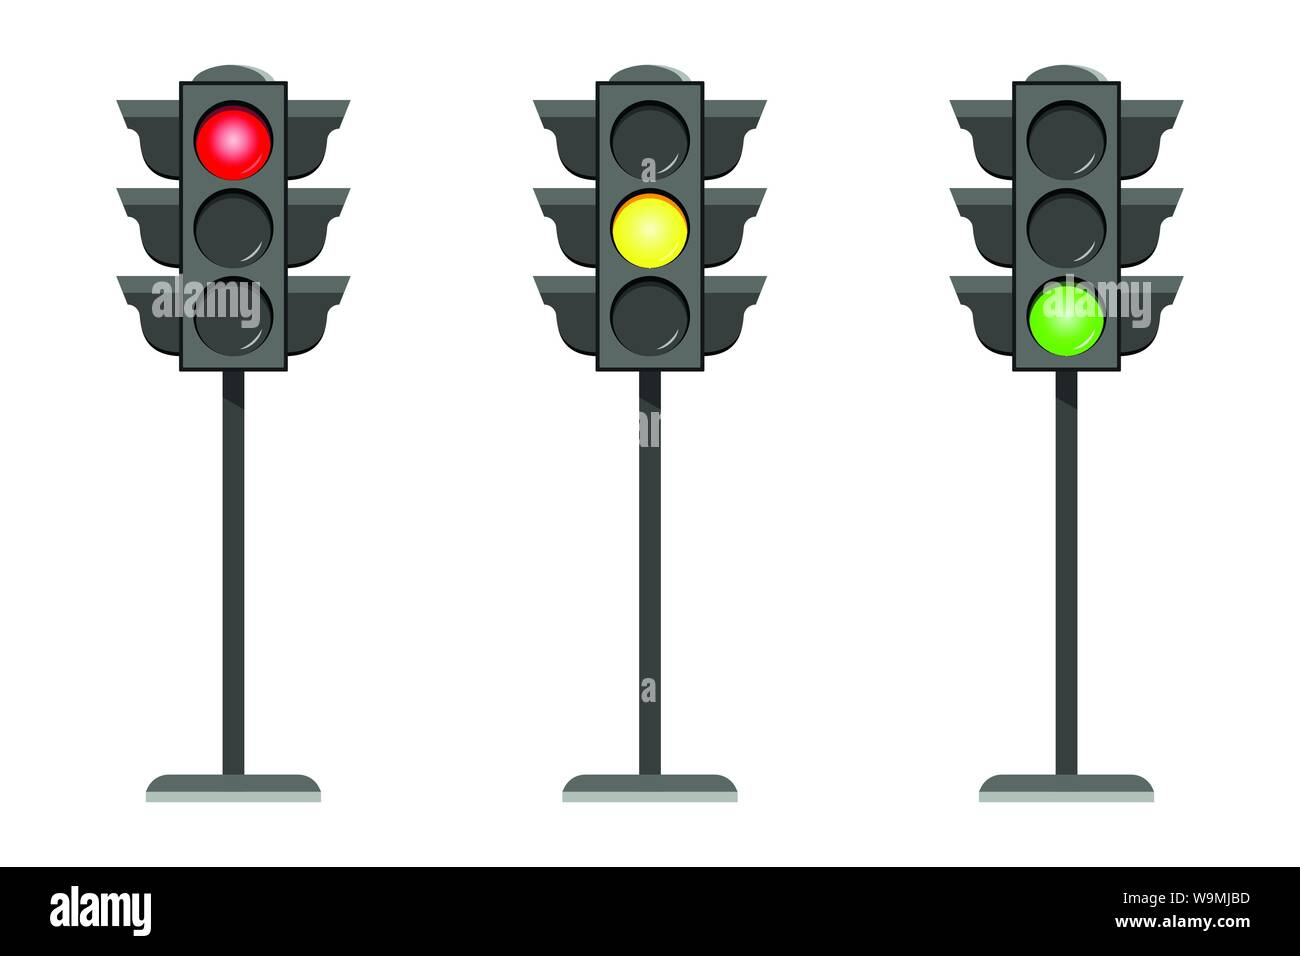 Vector concept traffic light interface icons flat design illustration set isolated on white background Stock Vector